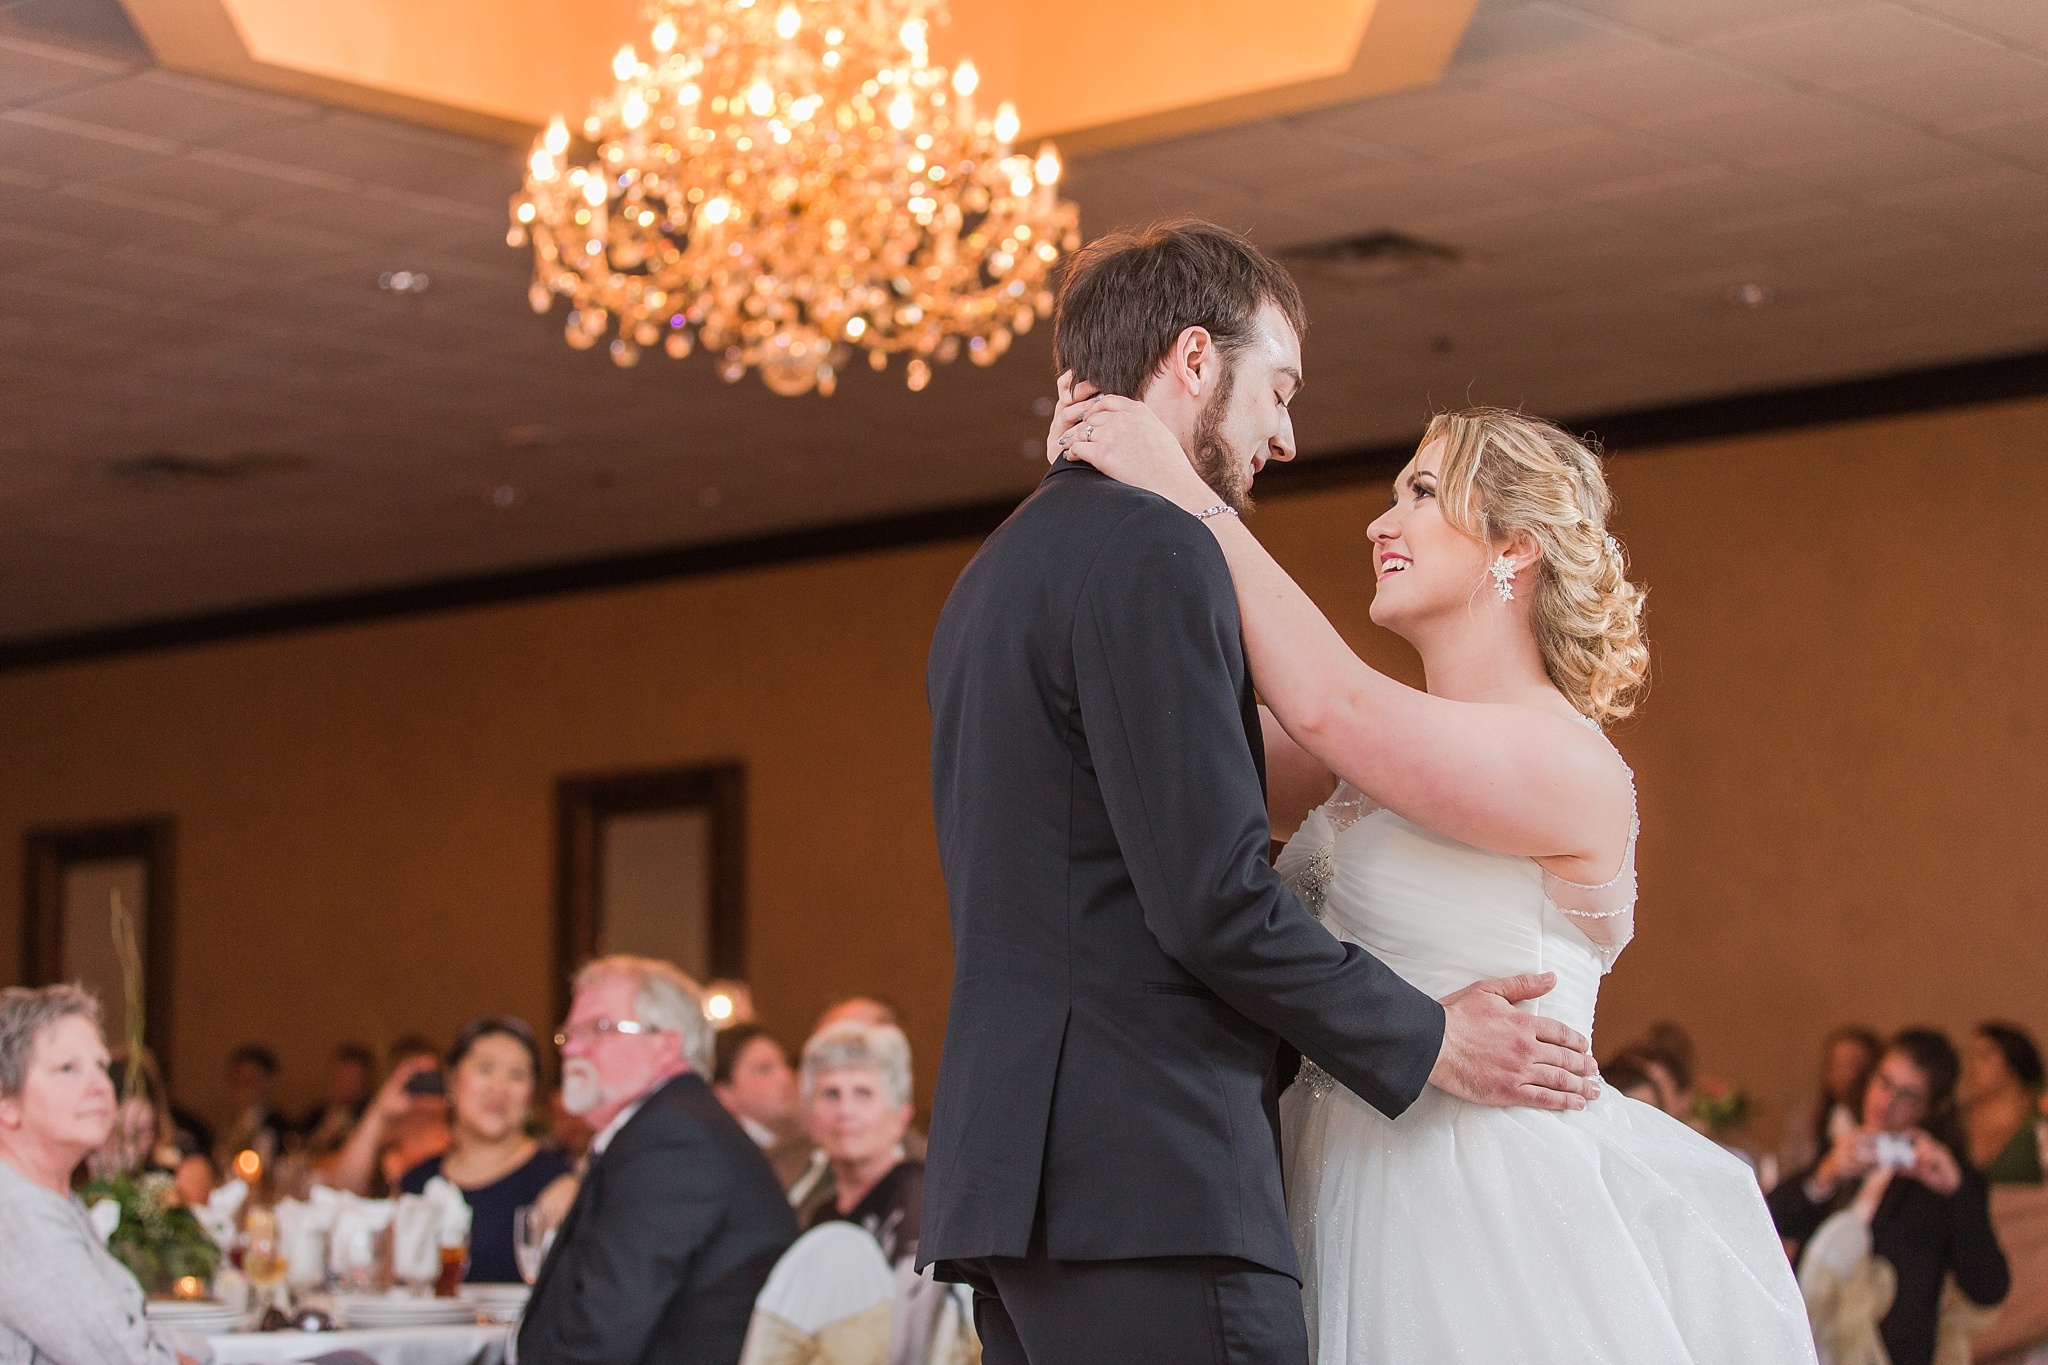 romantic-artful-candid-wedding-photos-in-detroit-lansing-ann-arbor-northern-michigan-and-chicago-by-courtney-carolyn-photography_0036.jpg